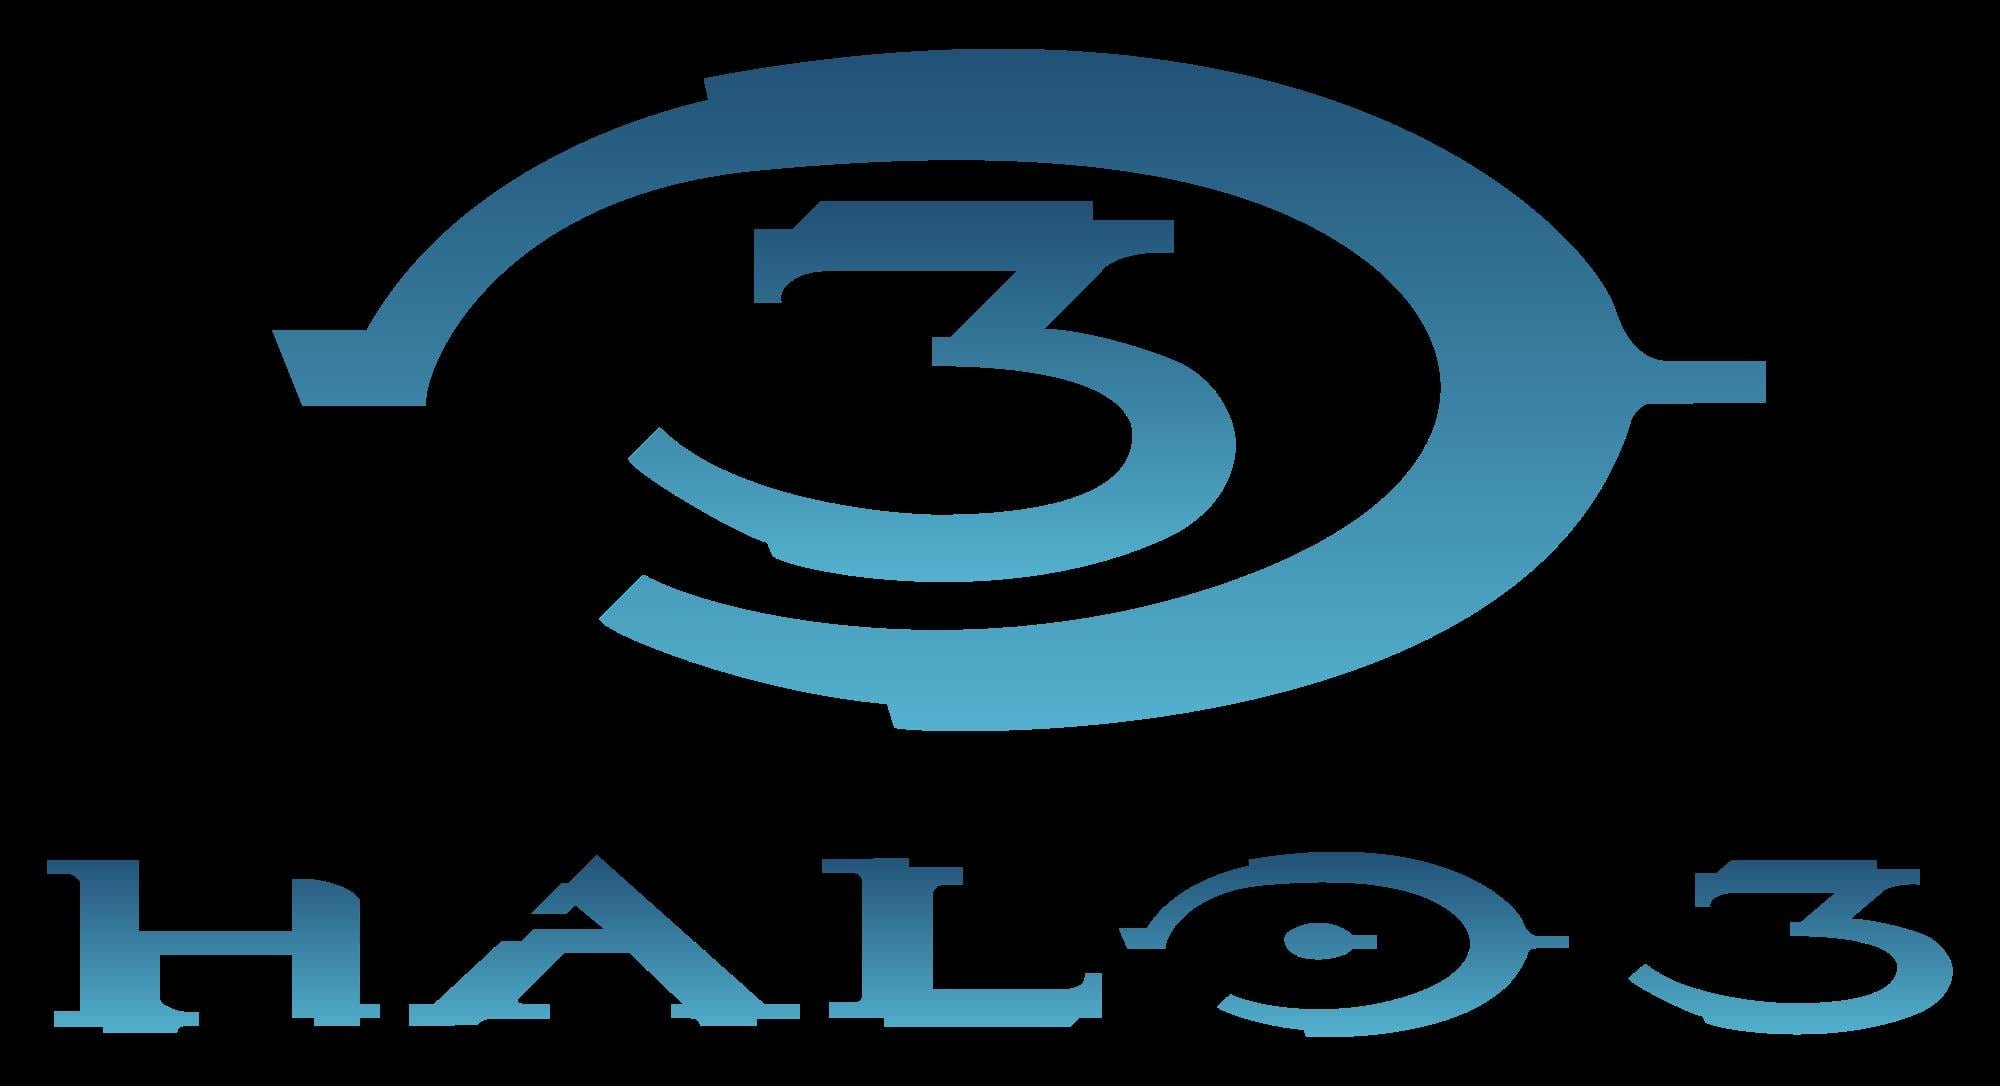 halo 3 halo 4 halo 3 odst and halo ce anniversary are now